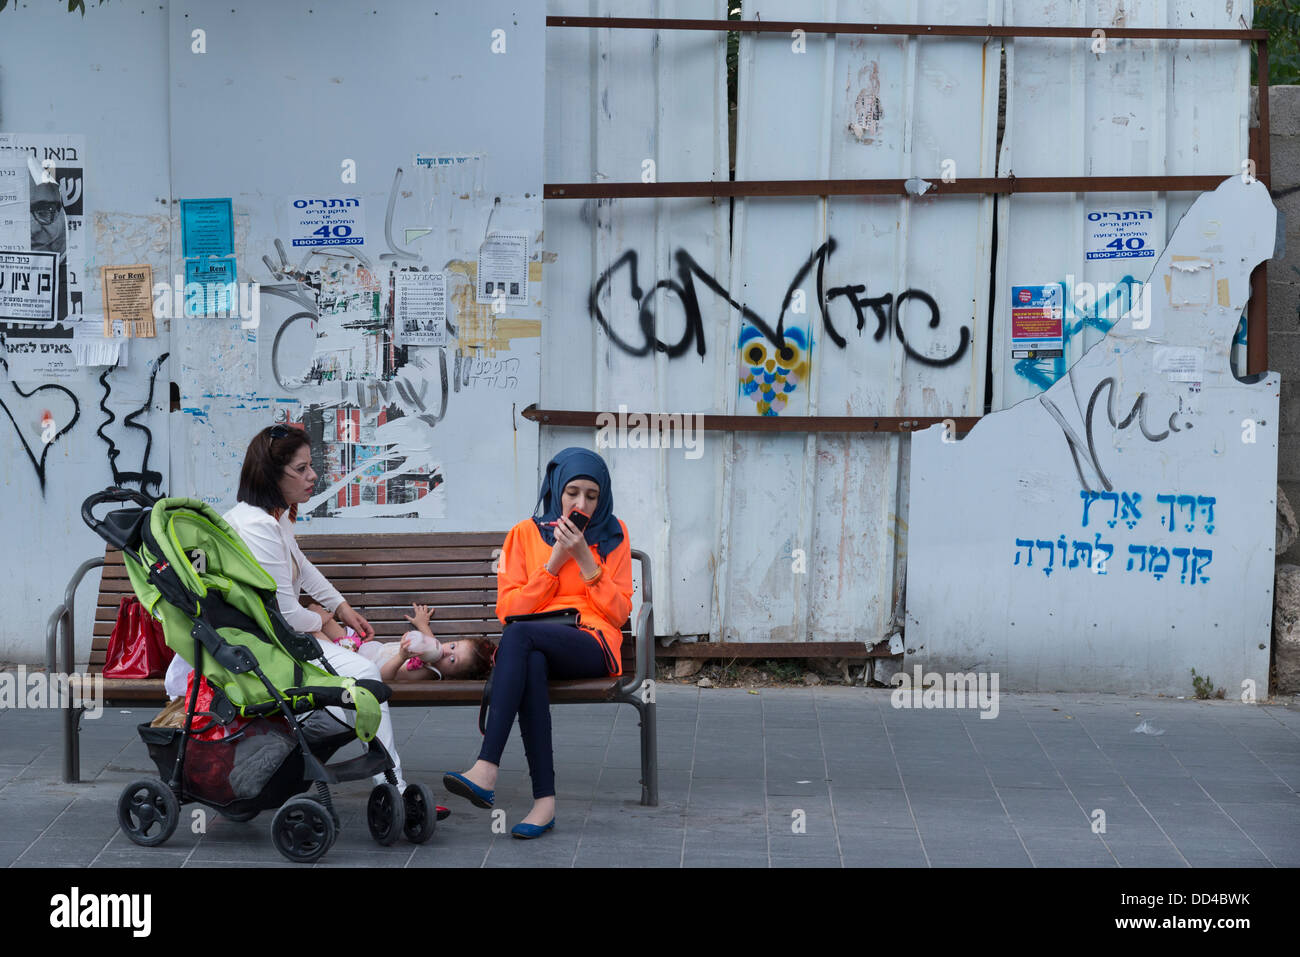 Two Palestinian women and baby resting on a bench with building site and graffiti in background. Jaffa Street. Jerusalem. - Stock Image